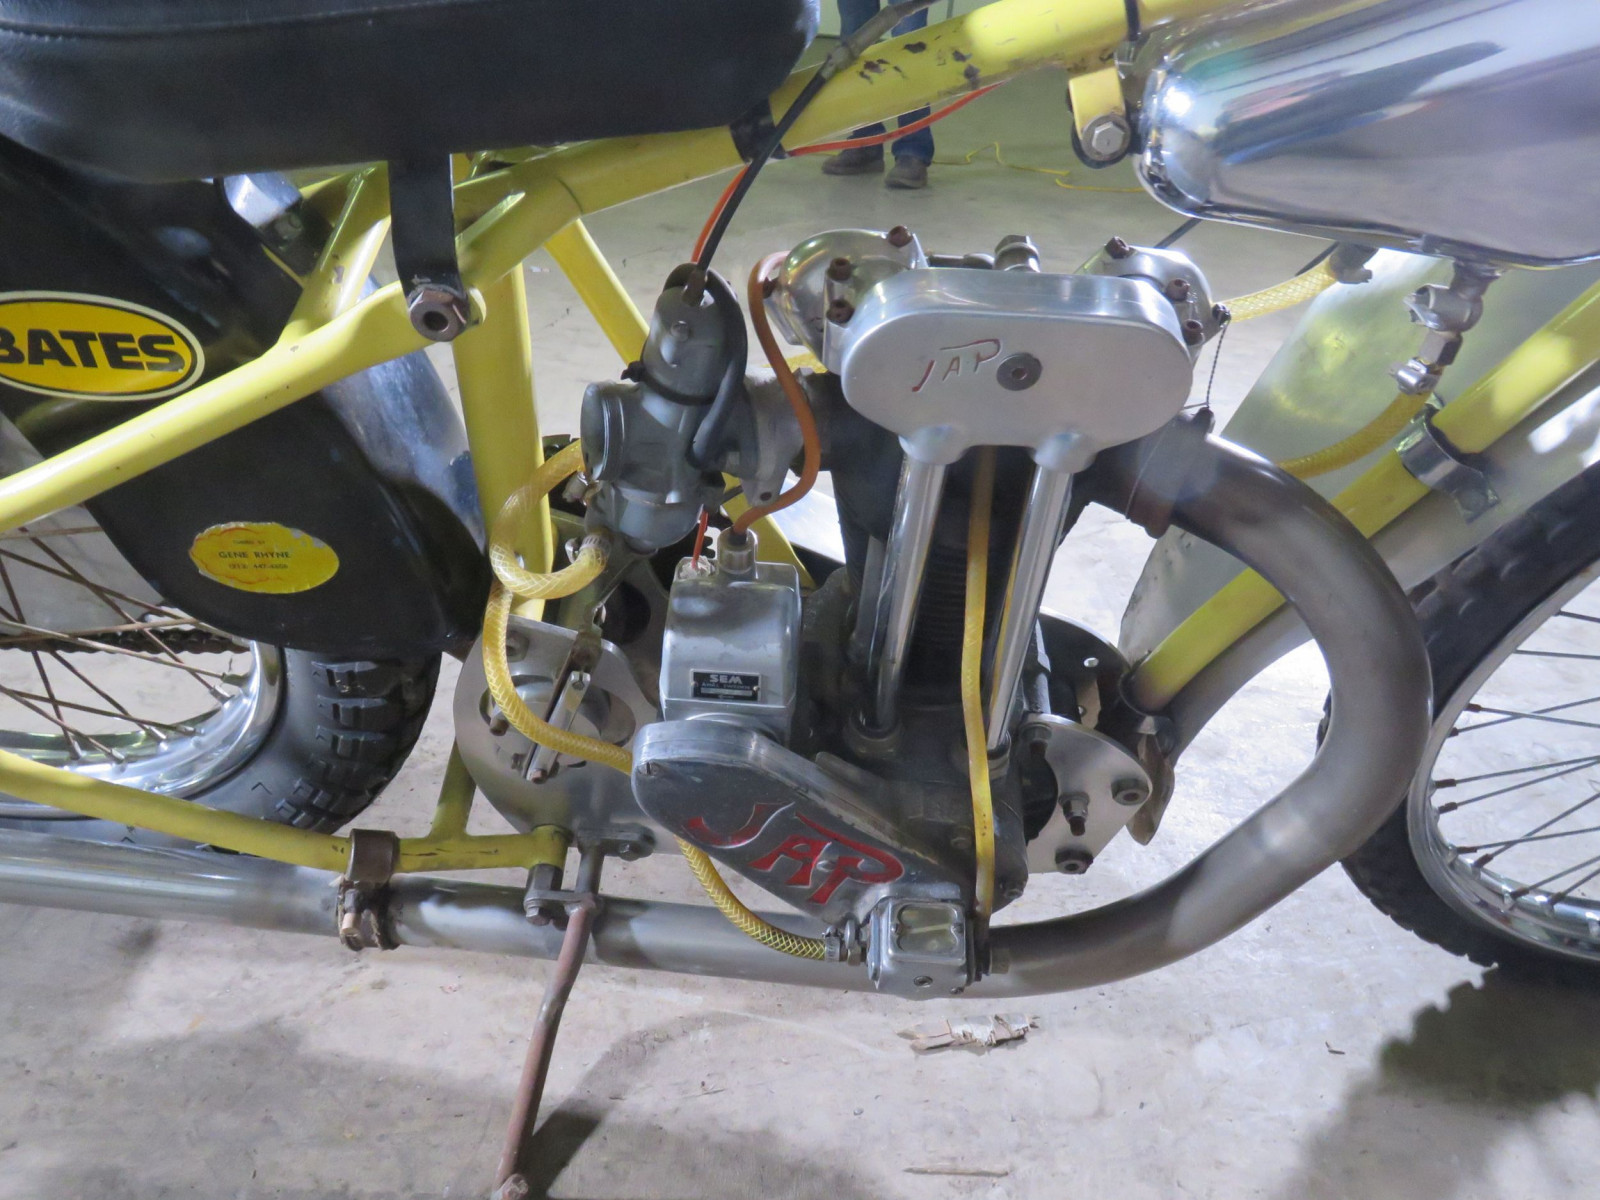 JAP Speedway Racer Motorcycle - Image 11